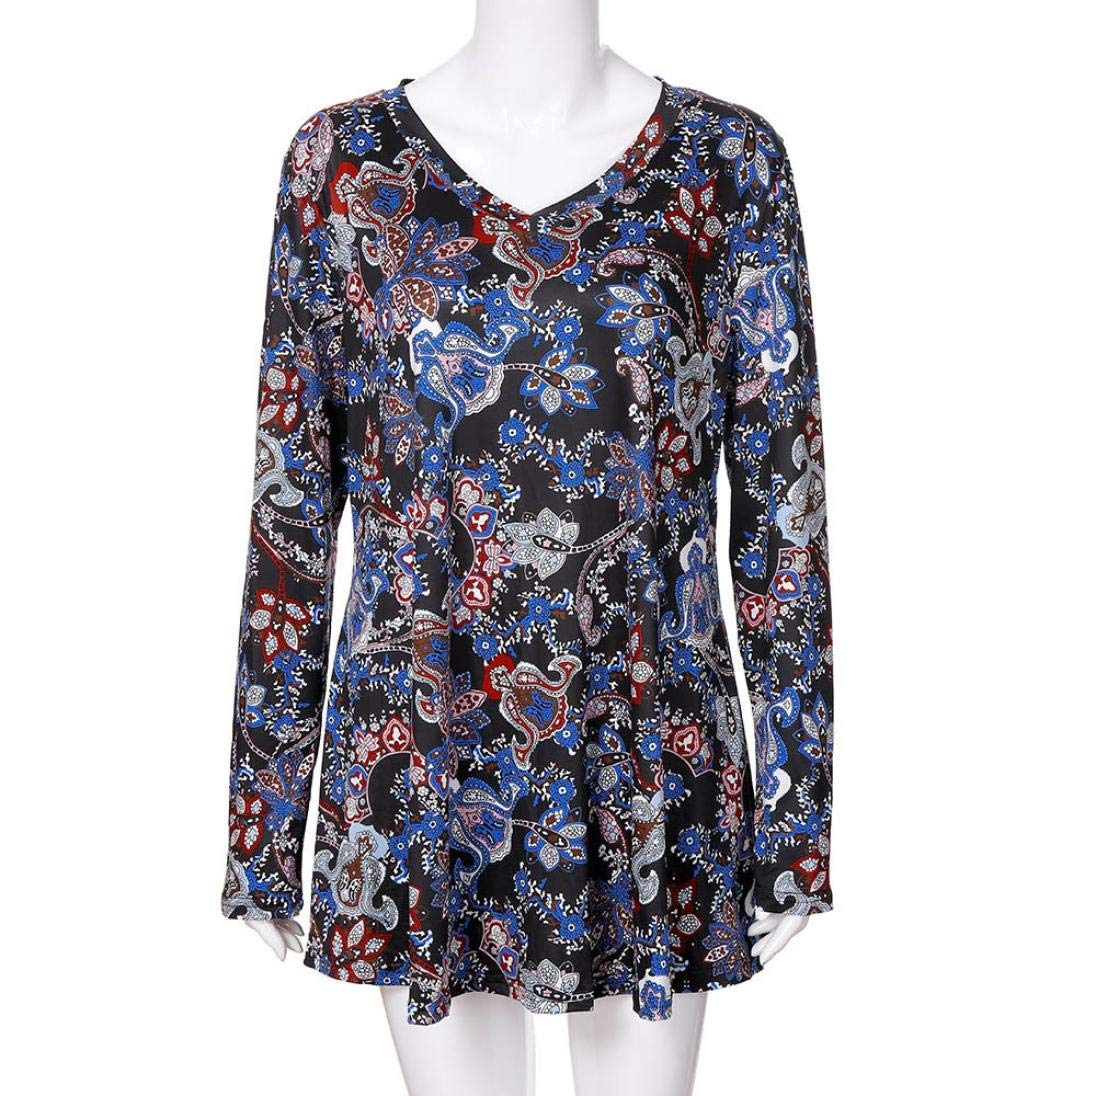 Vertily Retro Flower Print Tops Autumn Colorful Womens Loose Long Sleeve Blouse